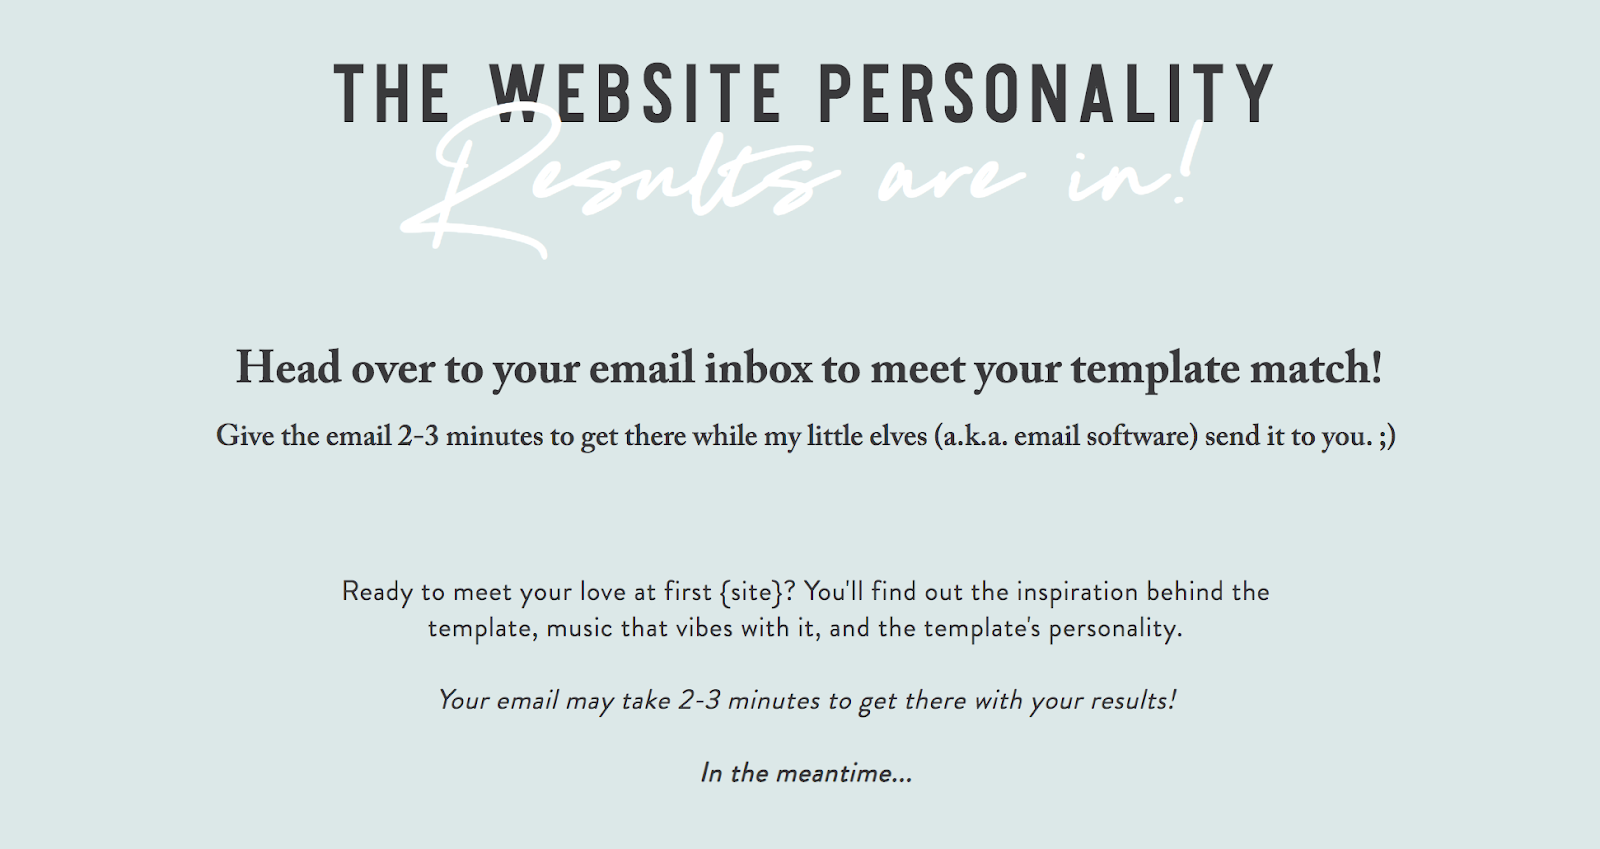 website personality quiz results page to tell them to check email